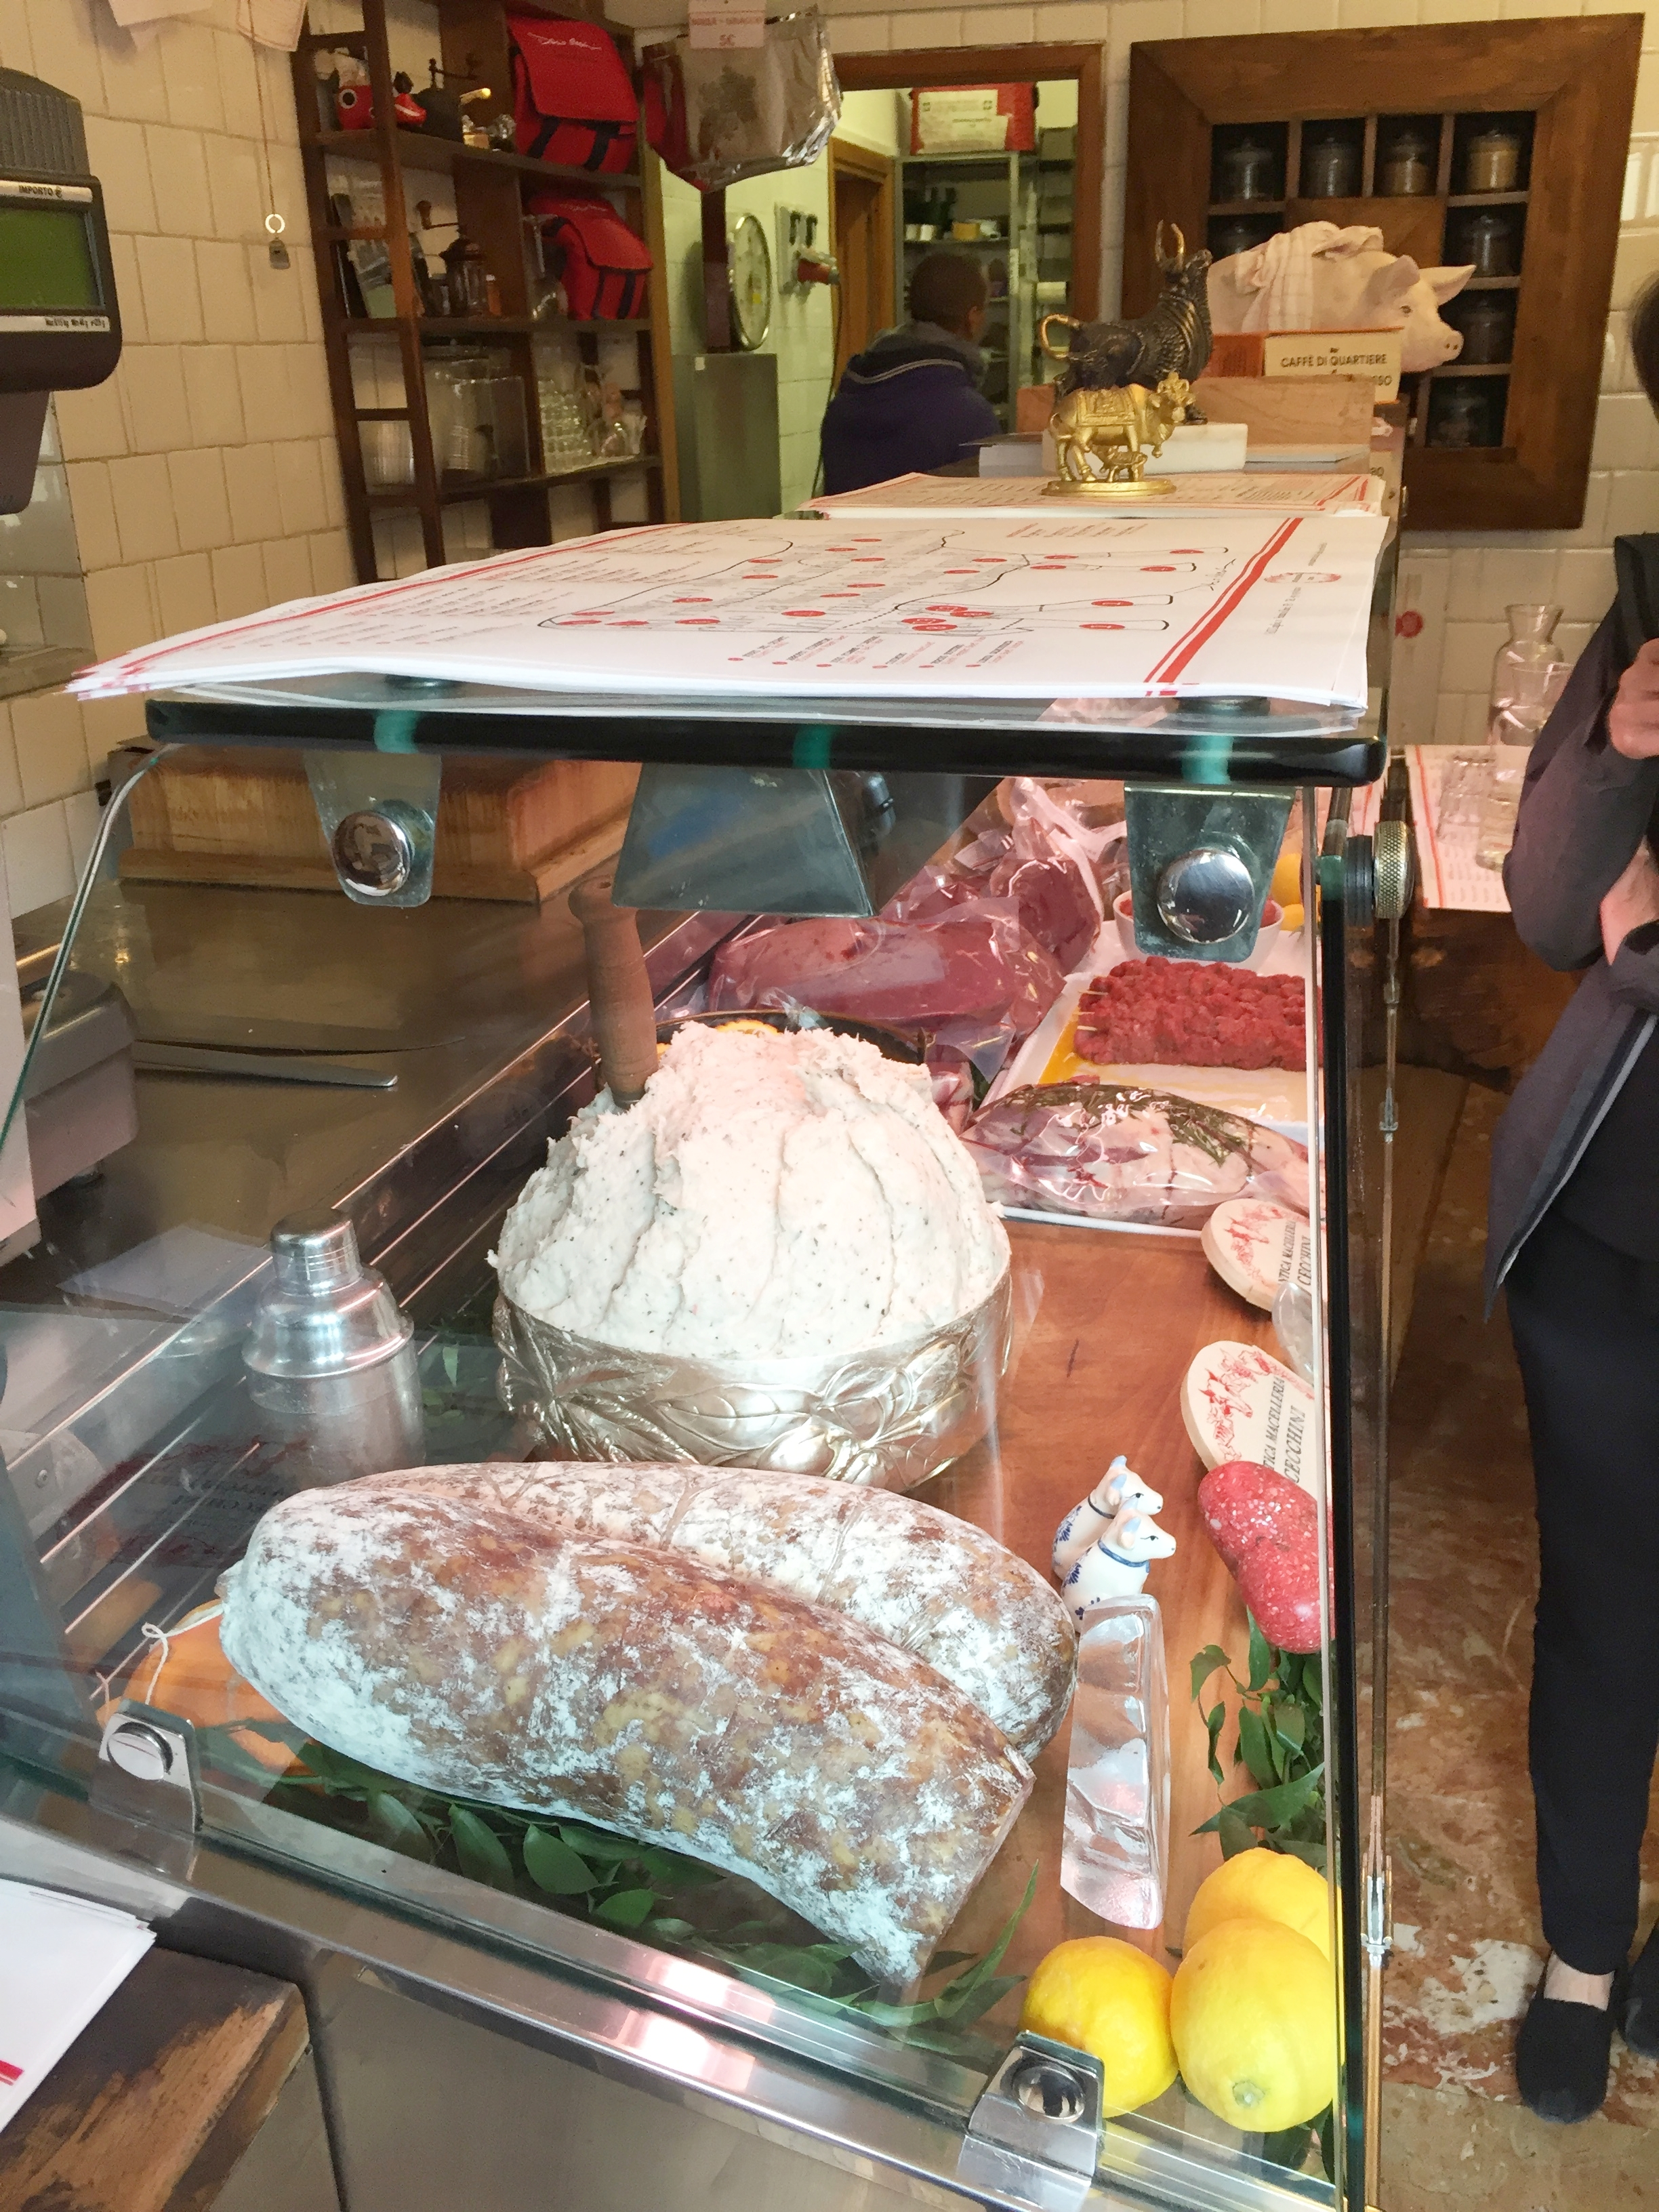 We were welcomed into the deli with a glass of wine, and a buffet of foods to try. This place takes meat to a whole new level. Case in point: that mound of white stuff? Lard. Served on toast.